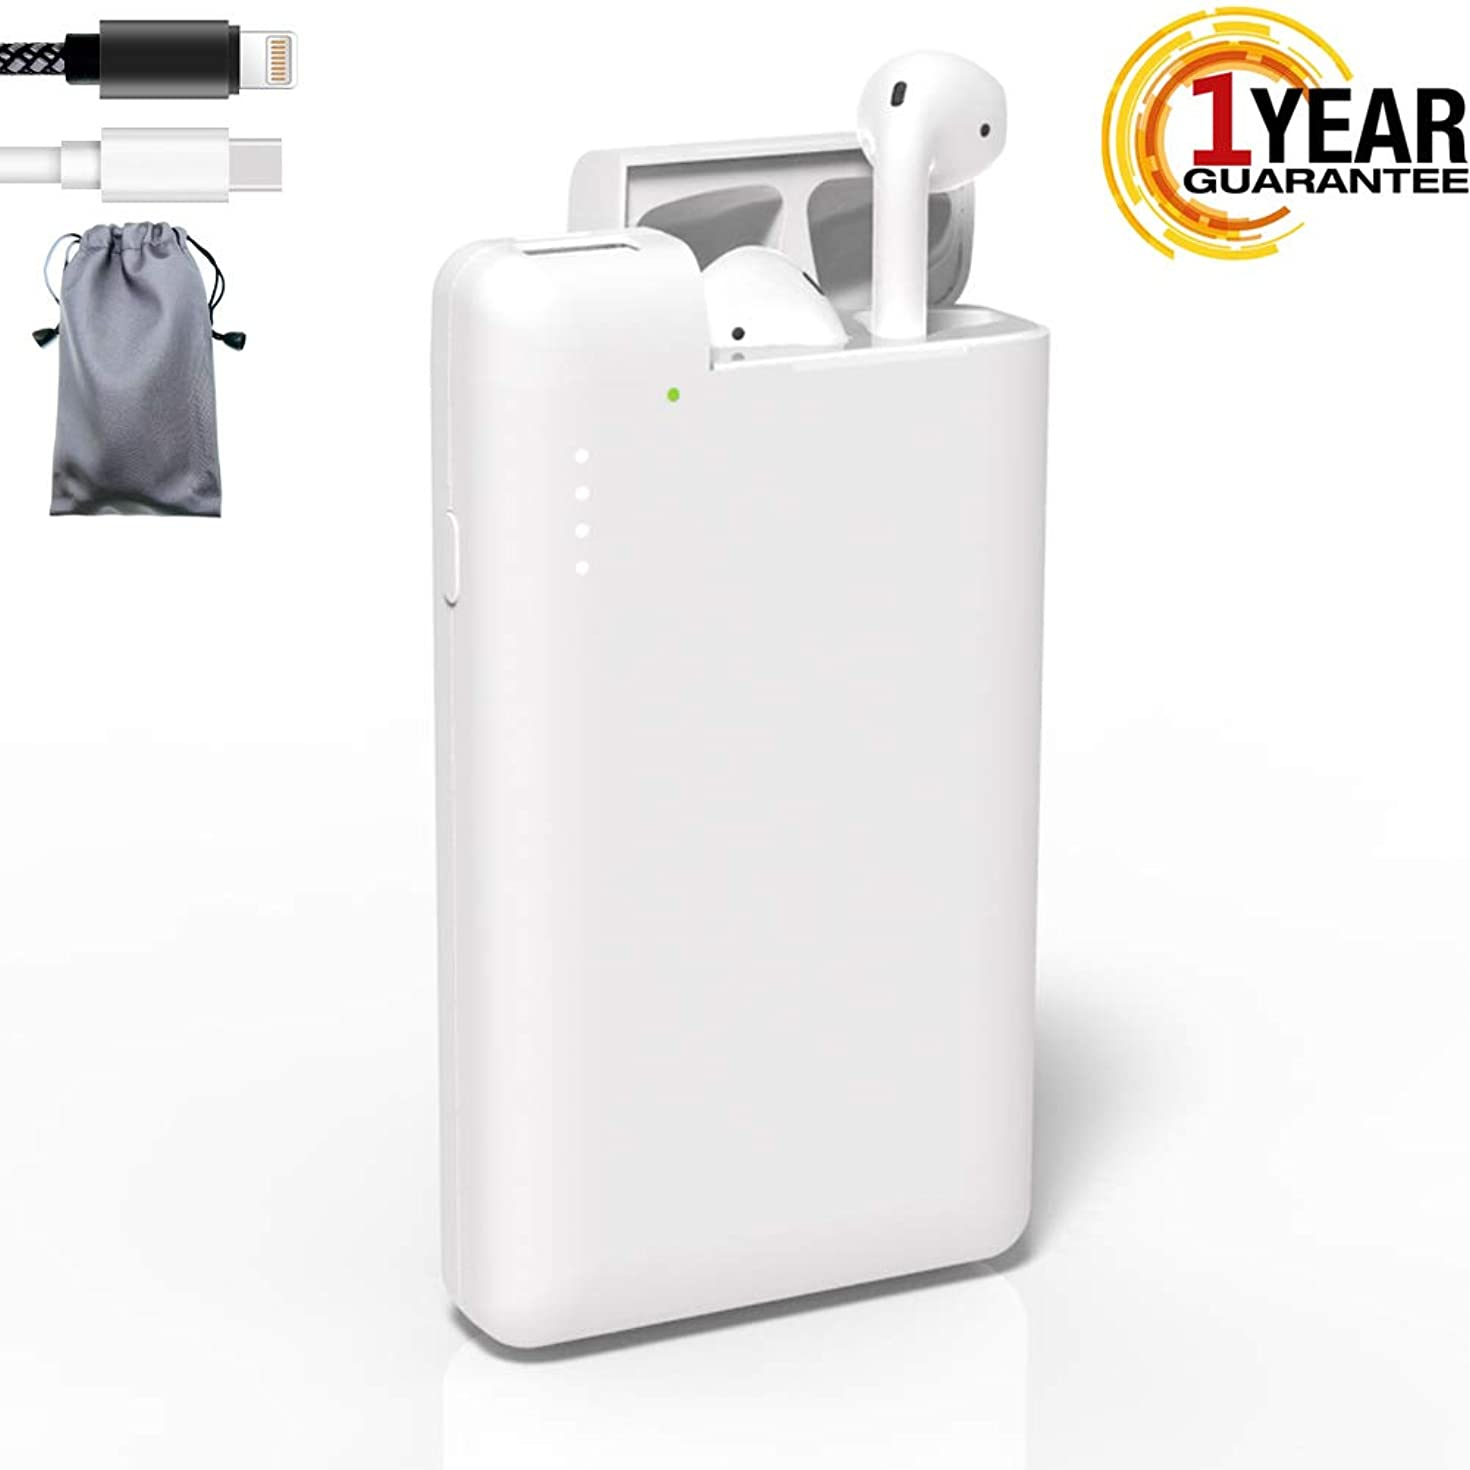 Replacement Charging case Compatible for Airpods with 125 Times Charging, Airpod Charging case & Portable Power Bank Charger USB C,Large Capacity 10000 mAh with Free USB Lightning Cable + Storage Bag